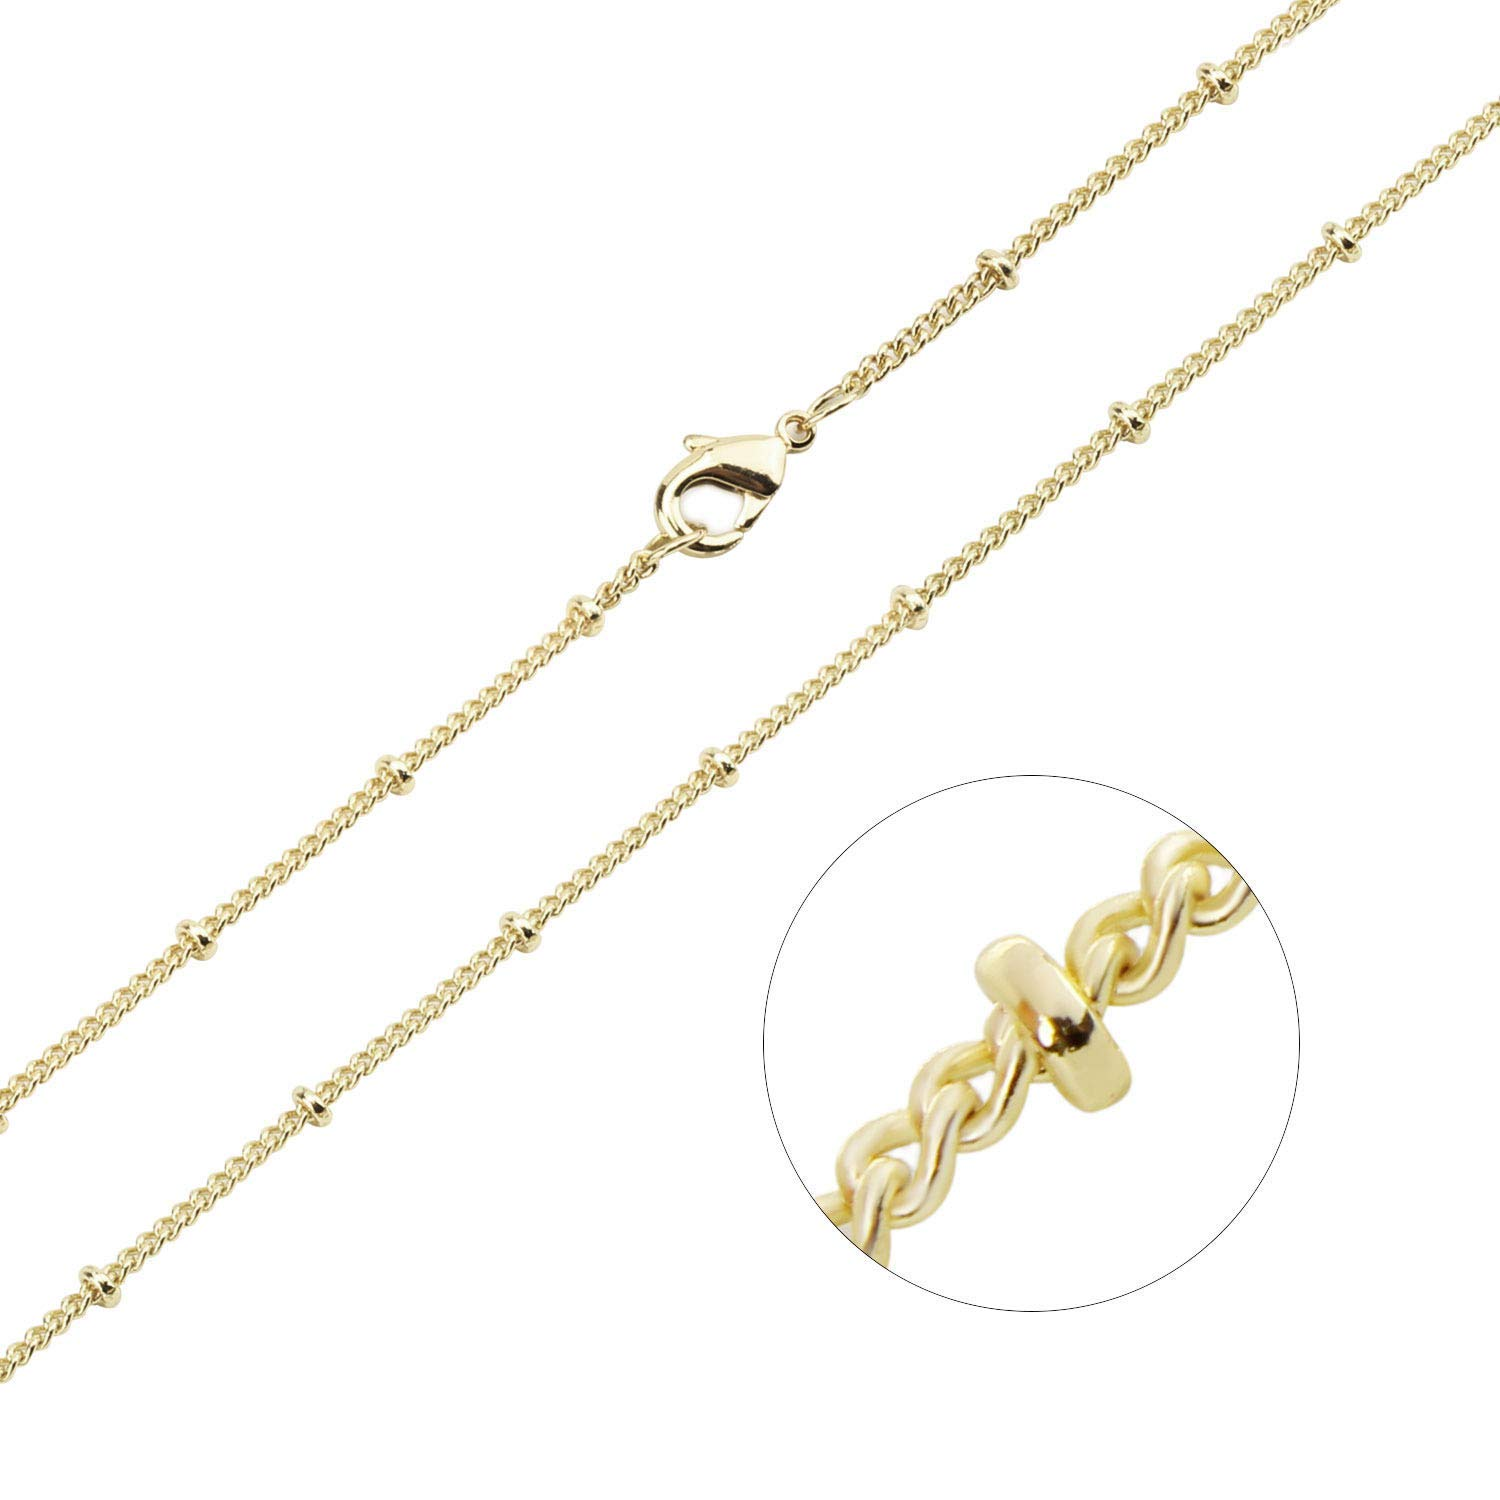 8006d74fa9078 Cheap Solid Gold Ball Chain, find Solid Gold Ball Chain deals on ...